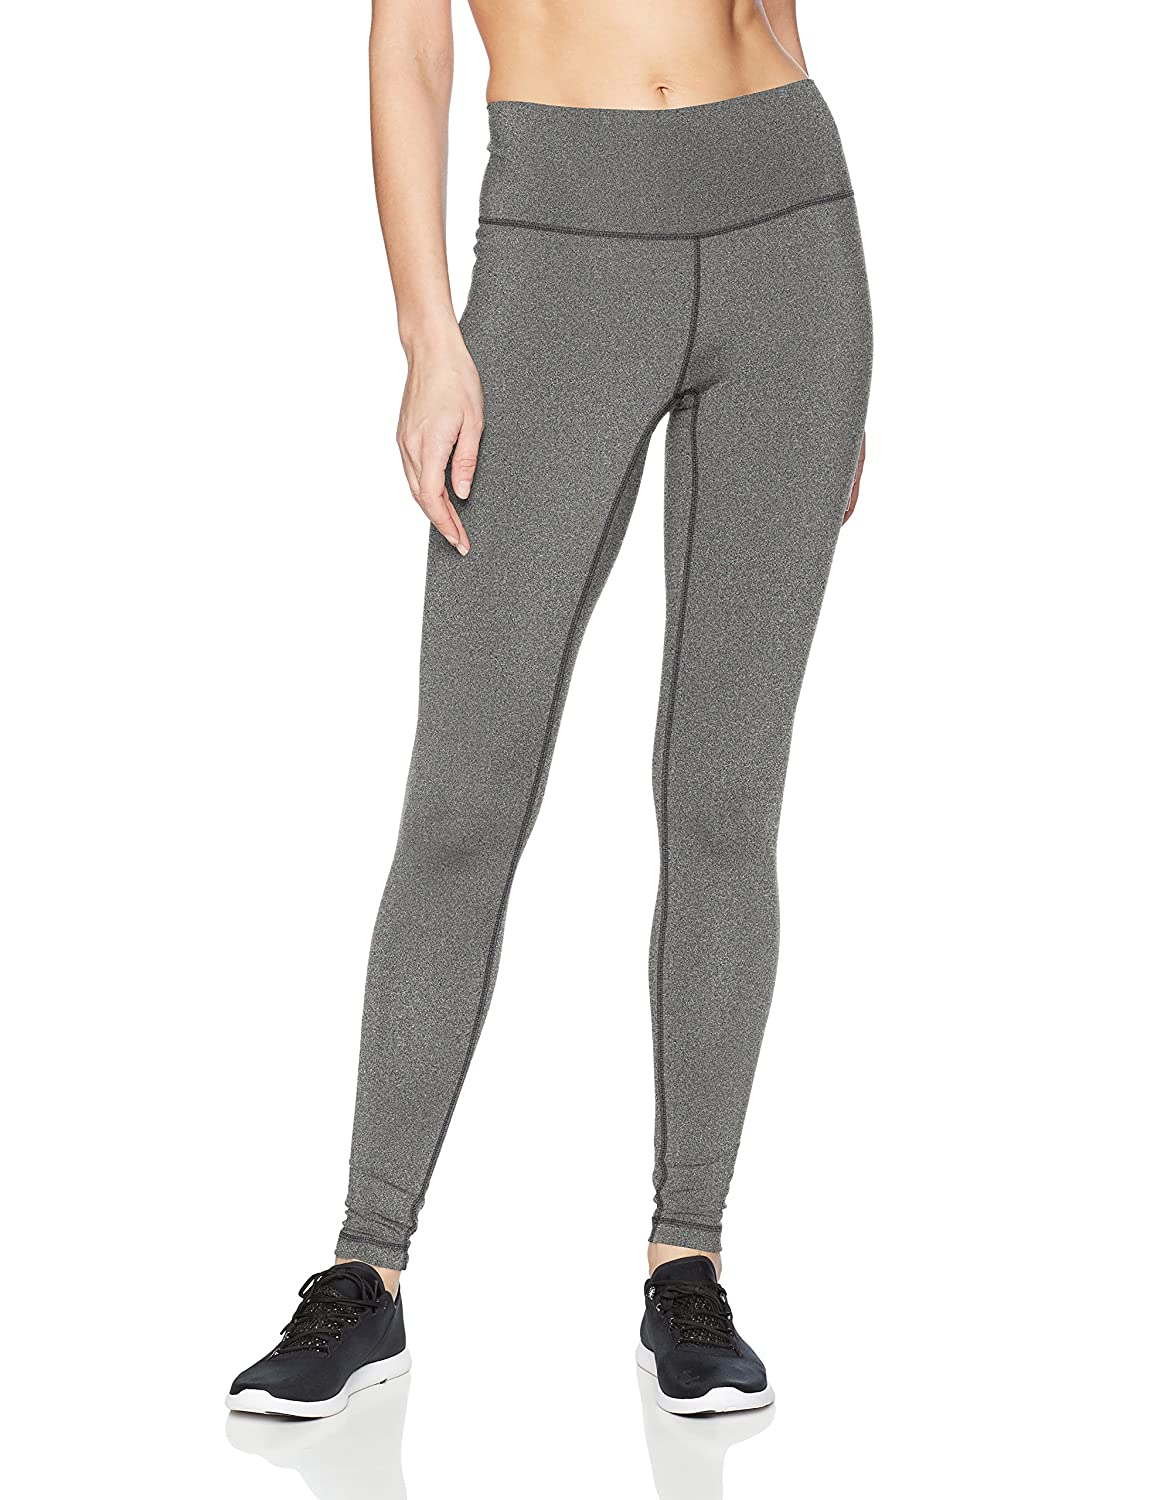 81e19147bc63 Amazon.com  adidas Women s Believe This High Rise Tights  Sports   Outdoors